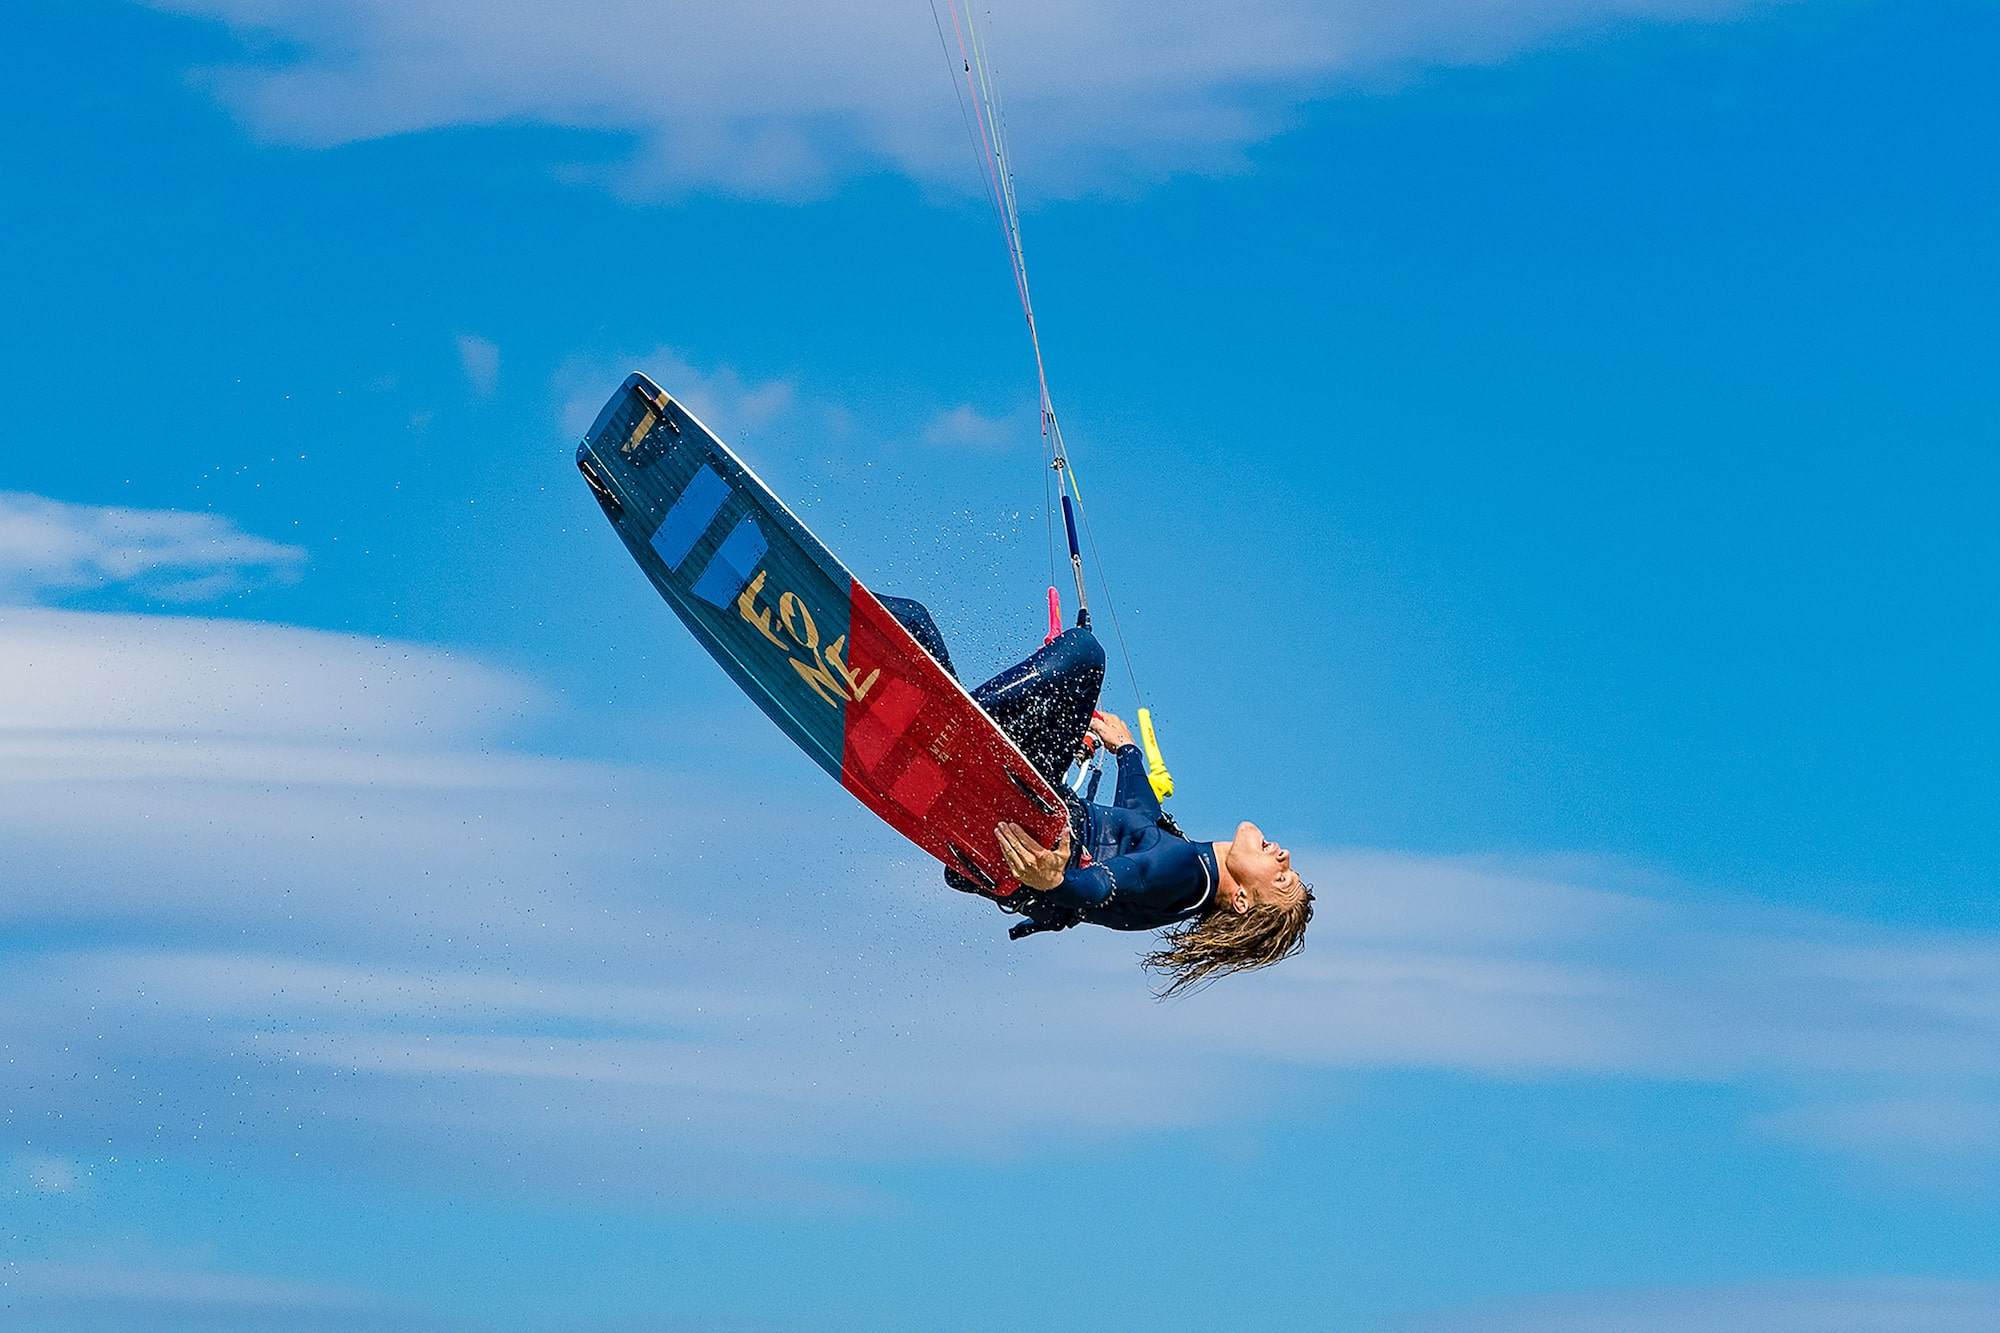 danas macijauskas sony alpha 7III kite surfer hanging upside down in mid air with a brilliant blue sky behind